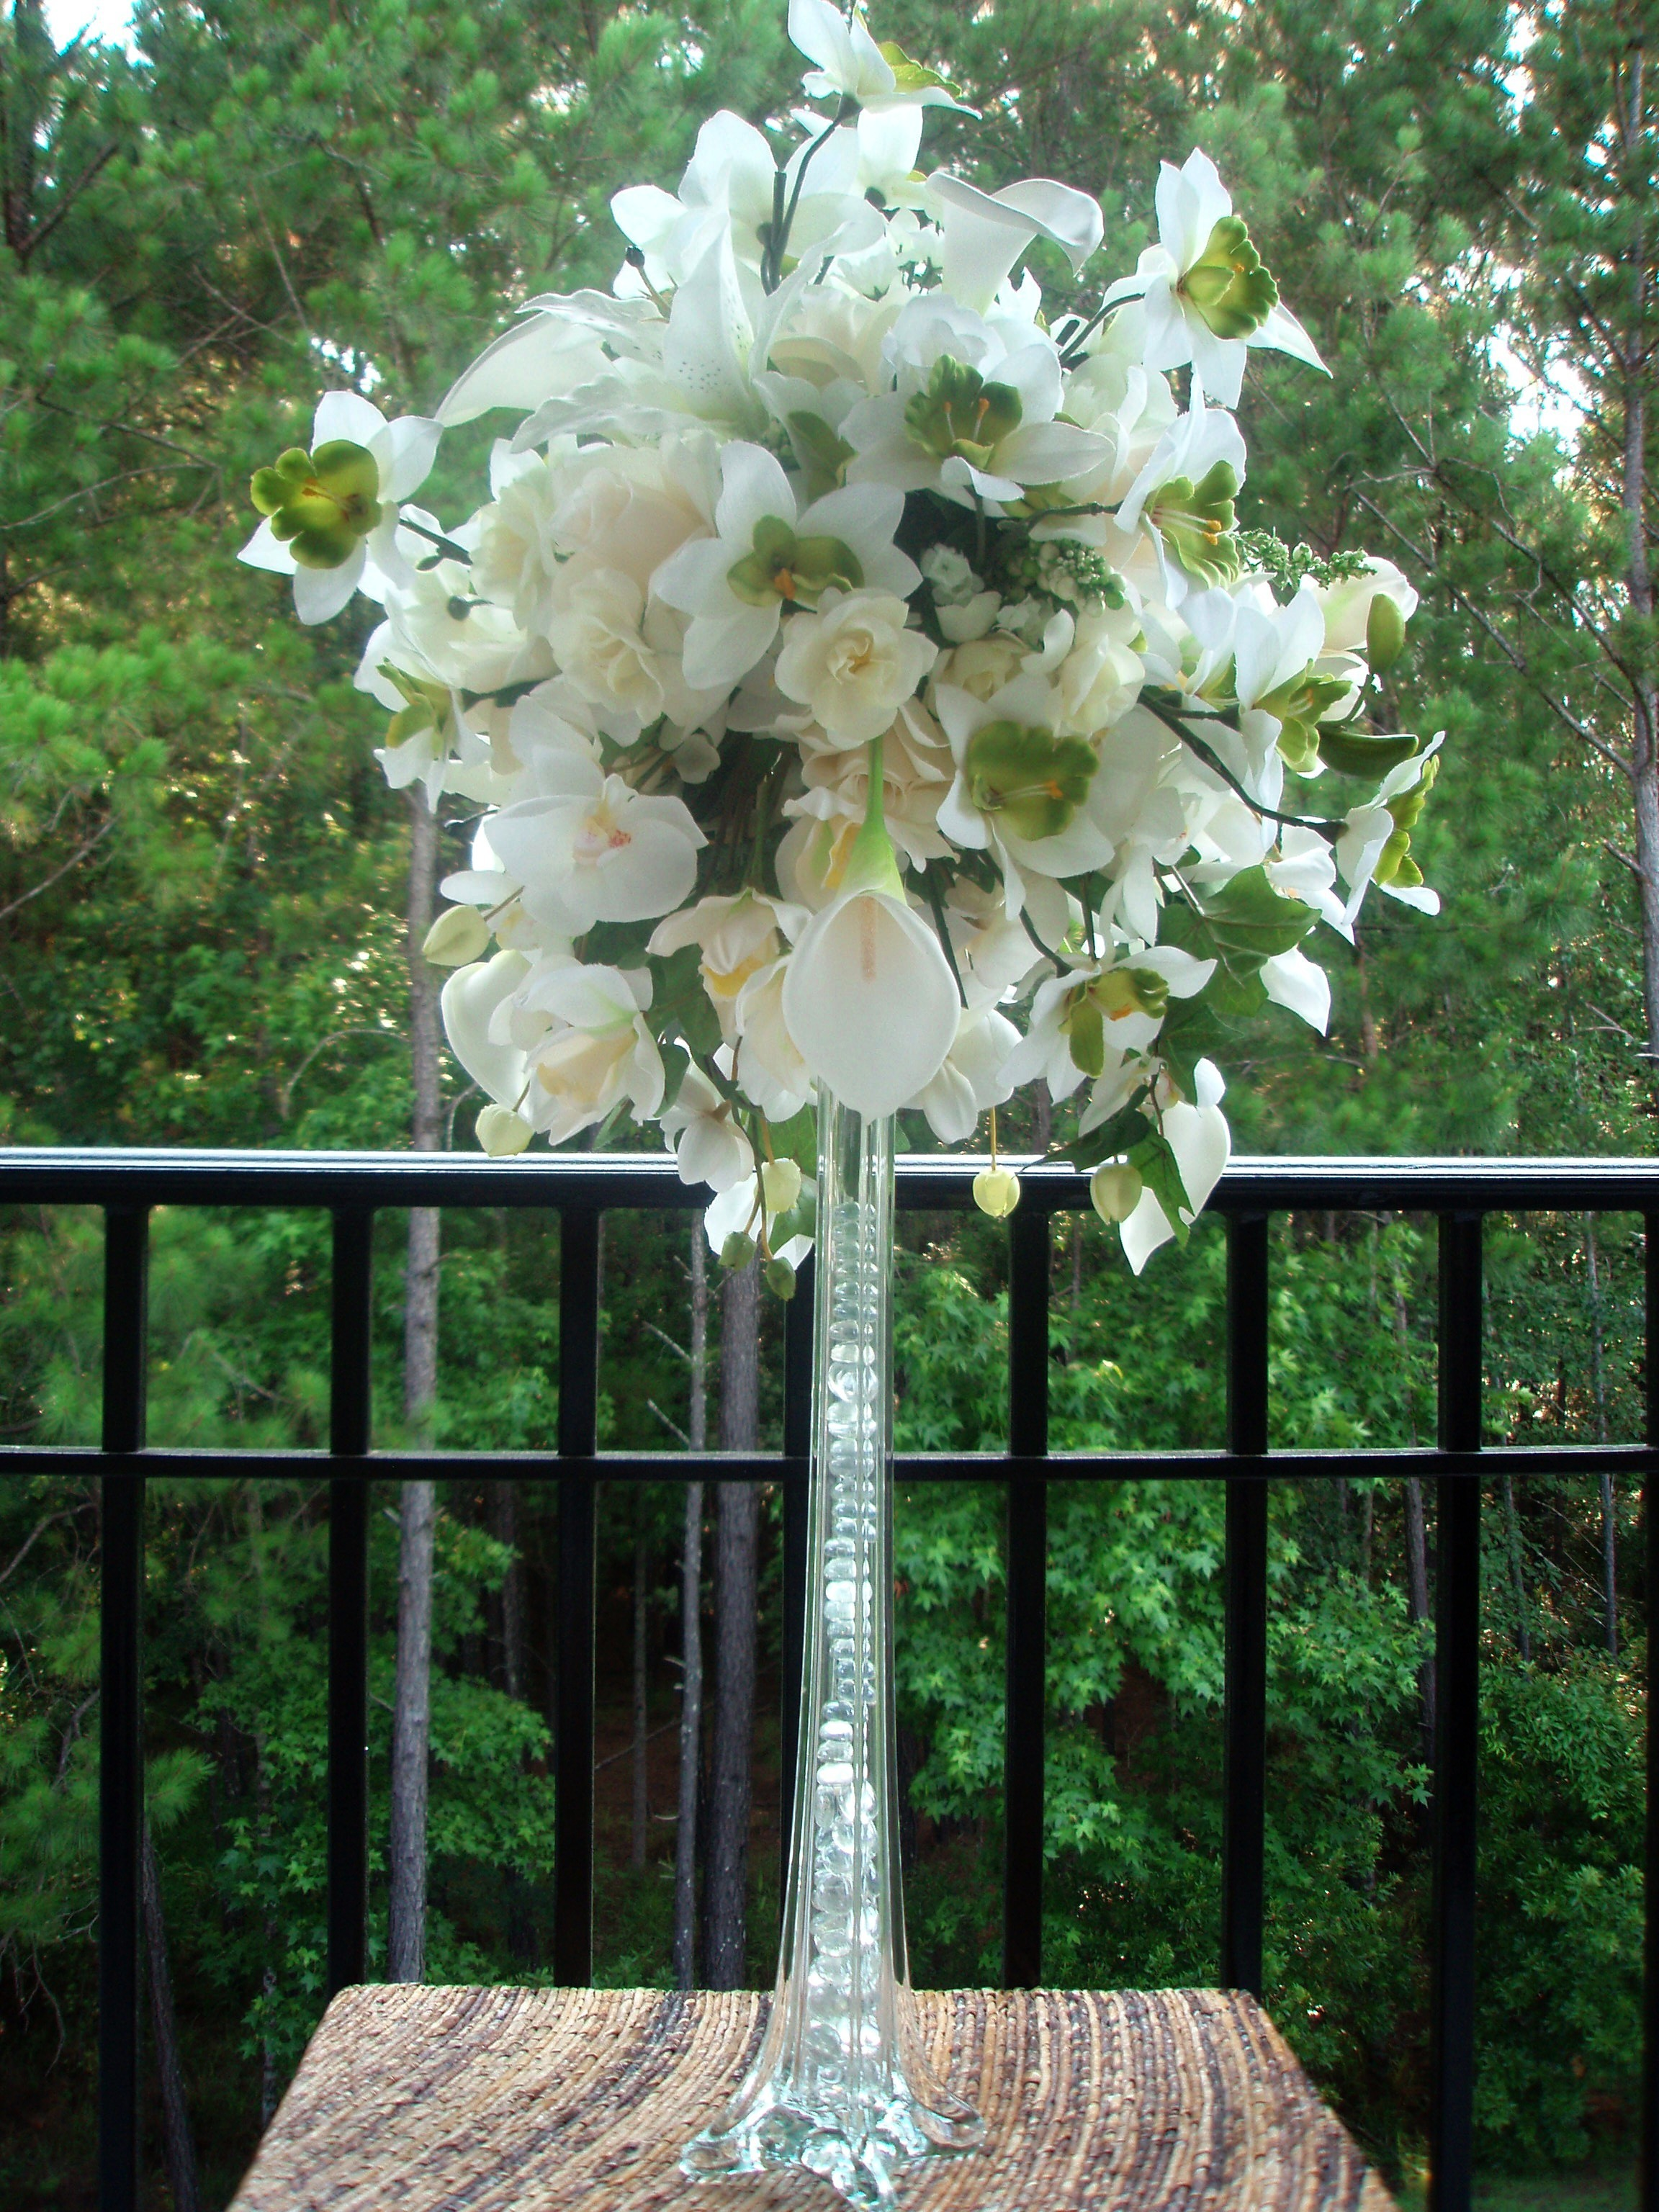 Ceremony, Inspiration, Reception, Flowers & Decor, white, yellow, orange, pink, red, purple, blue, green, brown, black, silver, gold, Ceremony Flowers, Centerpieces, Flowers, Centerpiece, Wedding, Board, Rental, Head, Savannah, Hilton, Savannah event decor